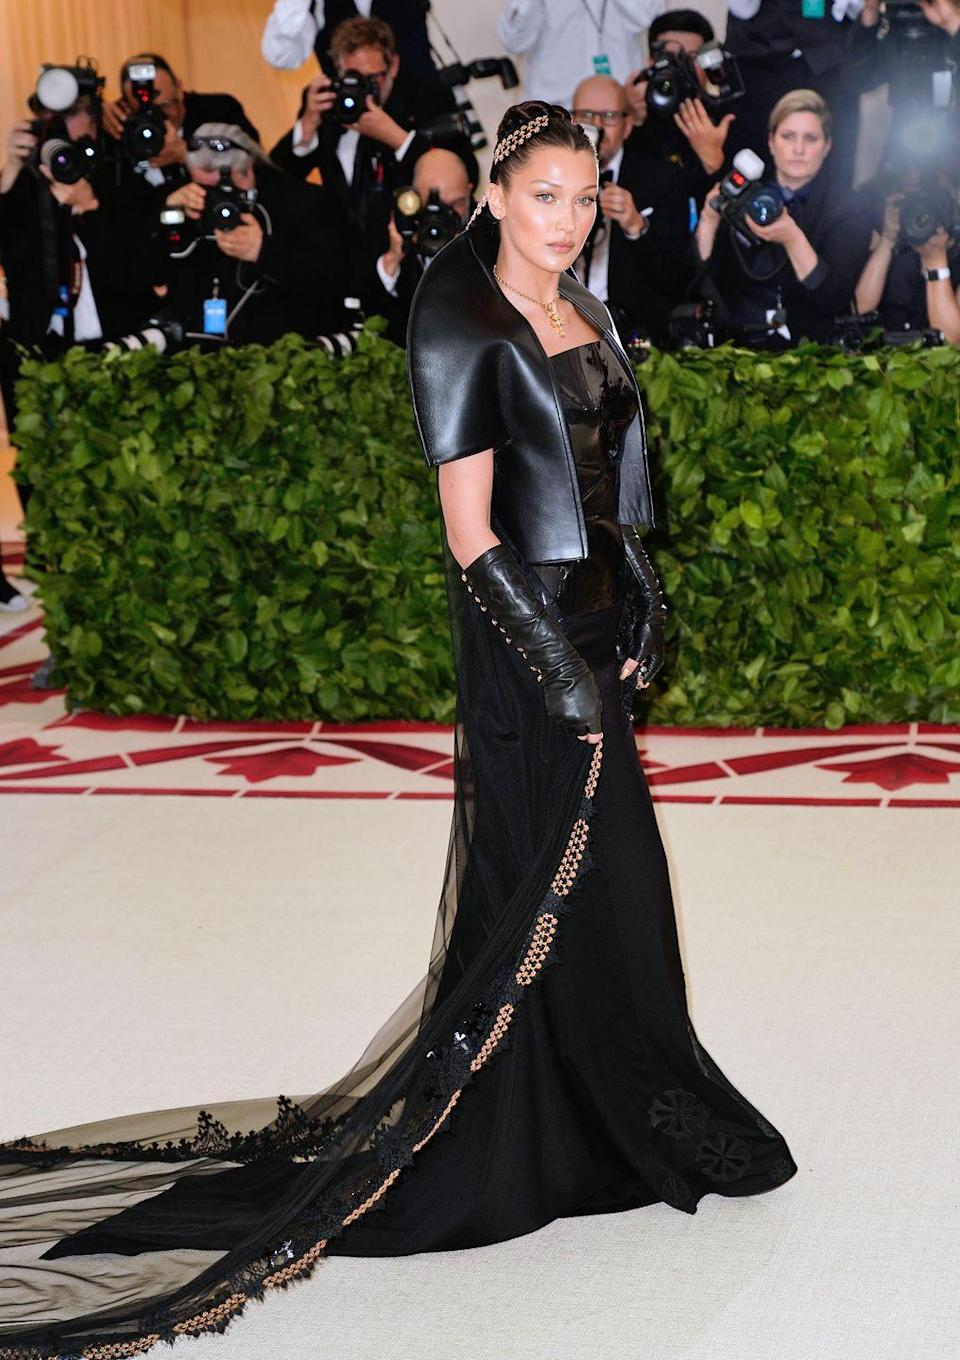 <p>The A-lister arrived at the 2018 Met Gala in a black gown with a sheer train and gold cross necklace created custom for her by Chrome Hearts, with whom she has a collection.<br></p>